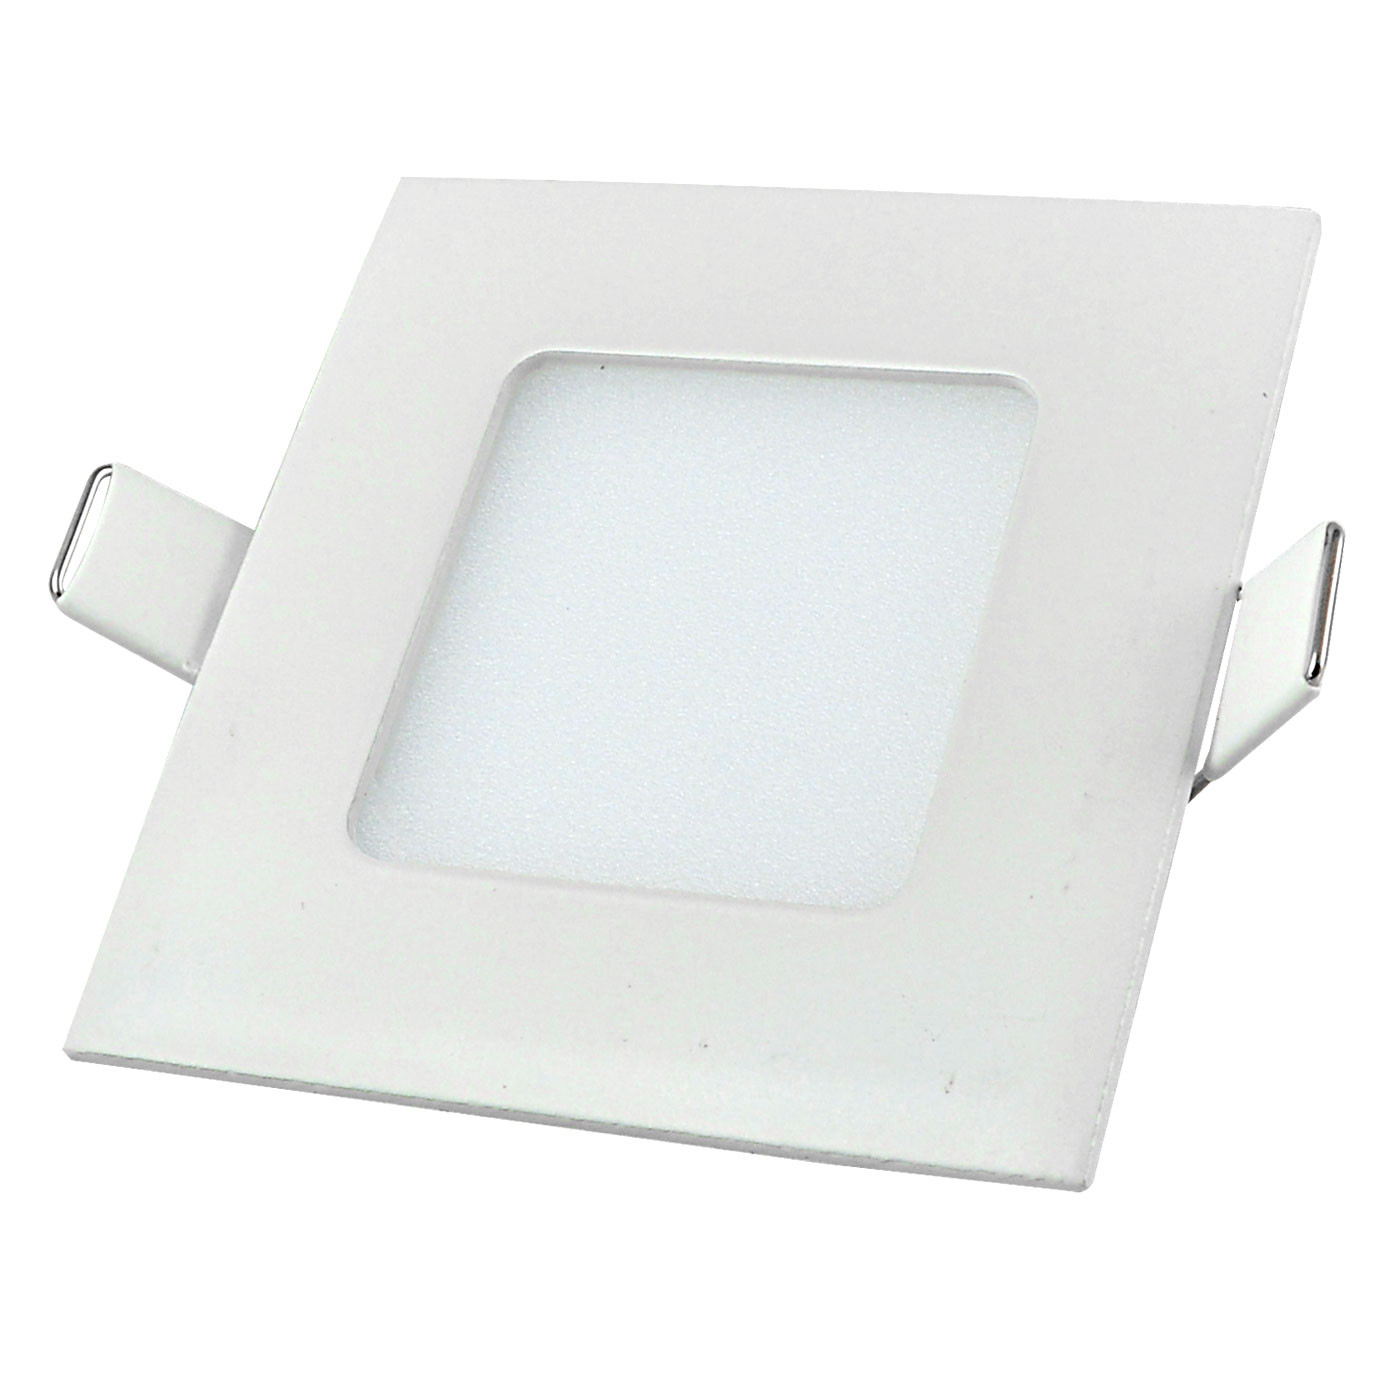 MENGS® 3W square LED recessed ceiling panel light 15x 2835 SMD LEDs LED Bulb Lamp in Warm White energy-saving light